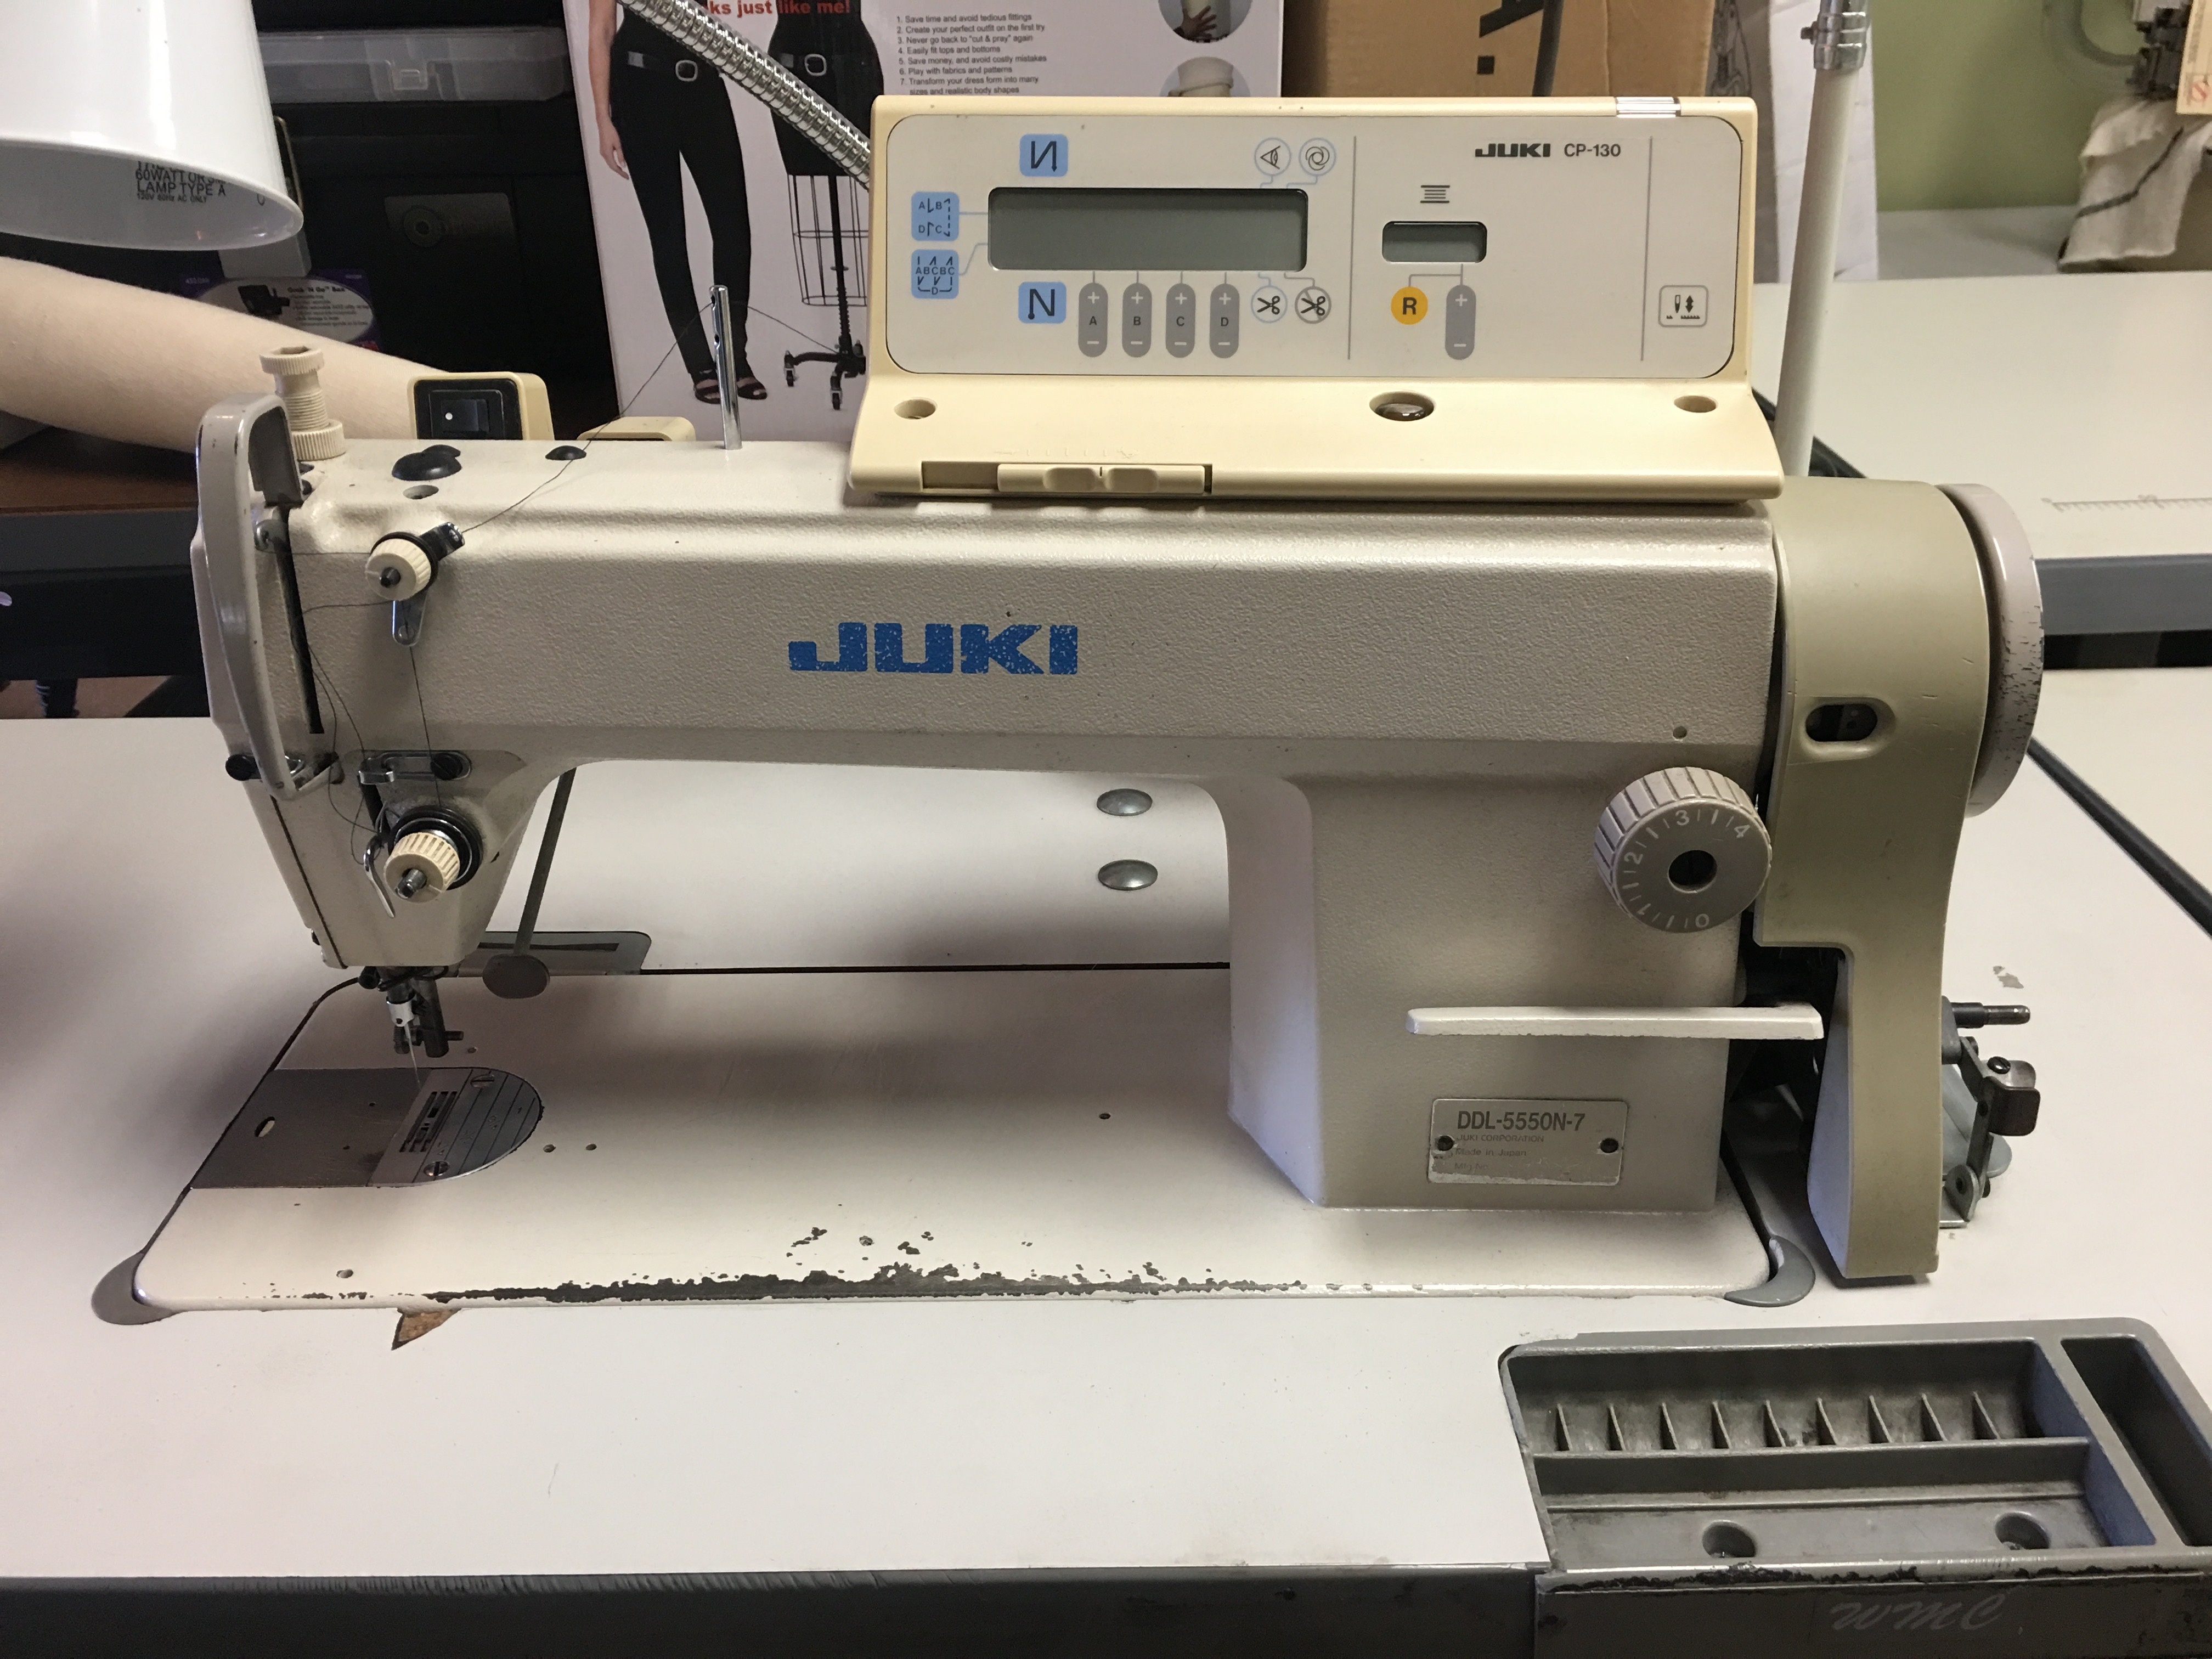 Juki DDL-5550N-7  High speed 1-needle machine with automatic thread trimmer